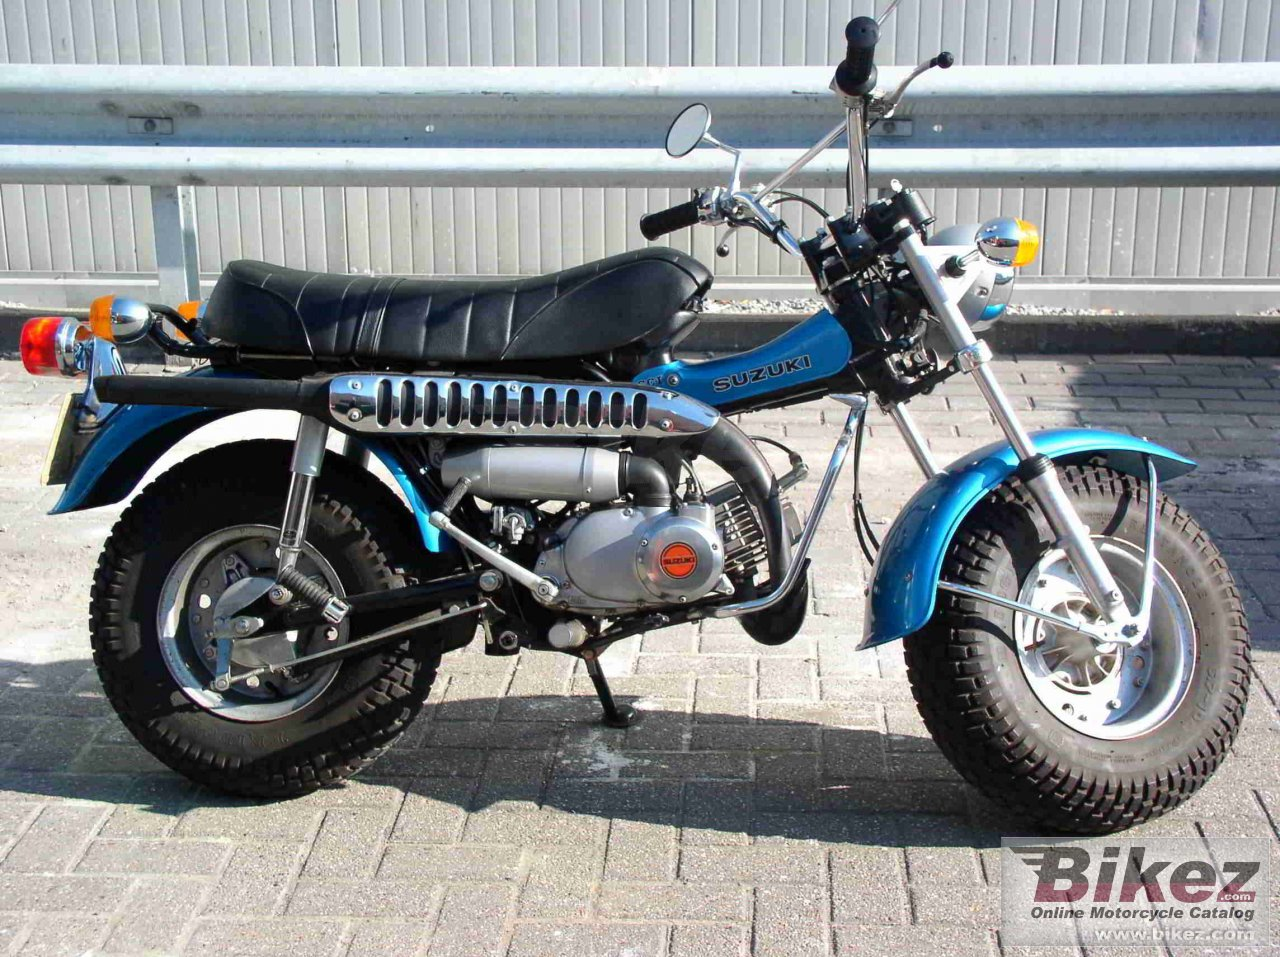 Big Knarf Knireprah rv 90 picture and wallpaper from Bikez.com